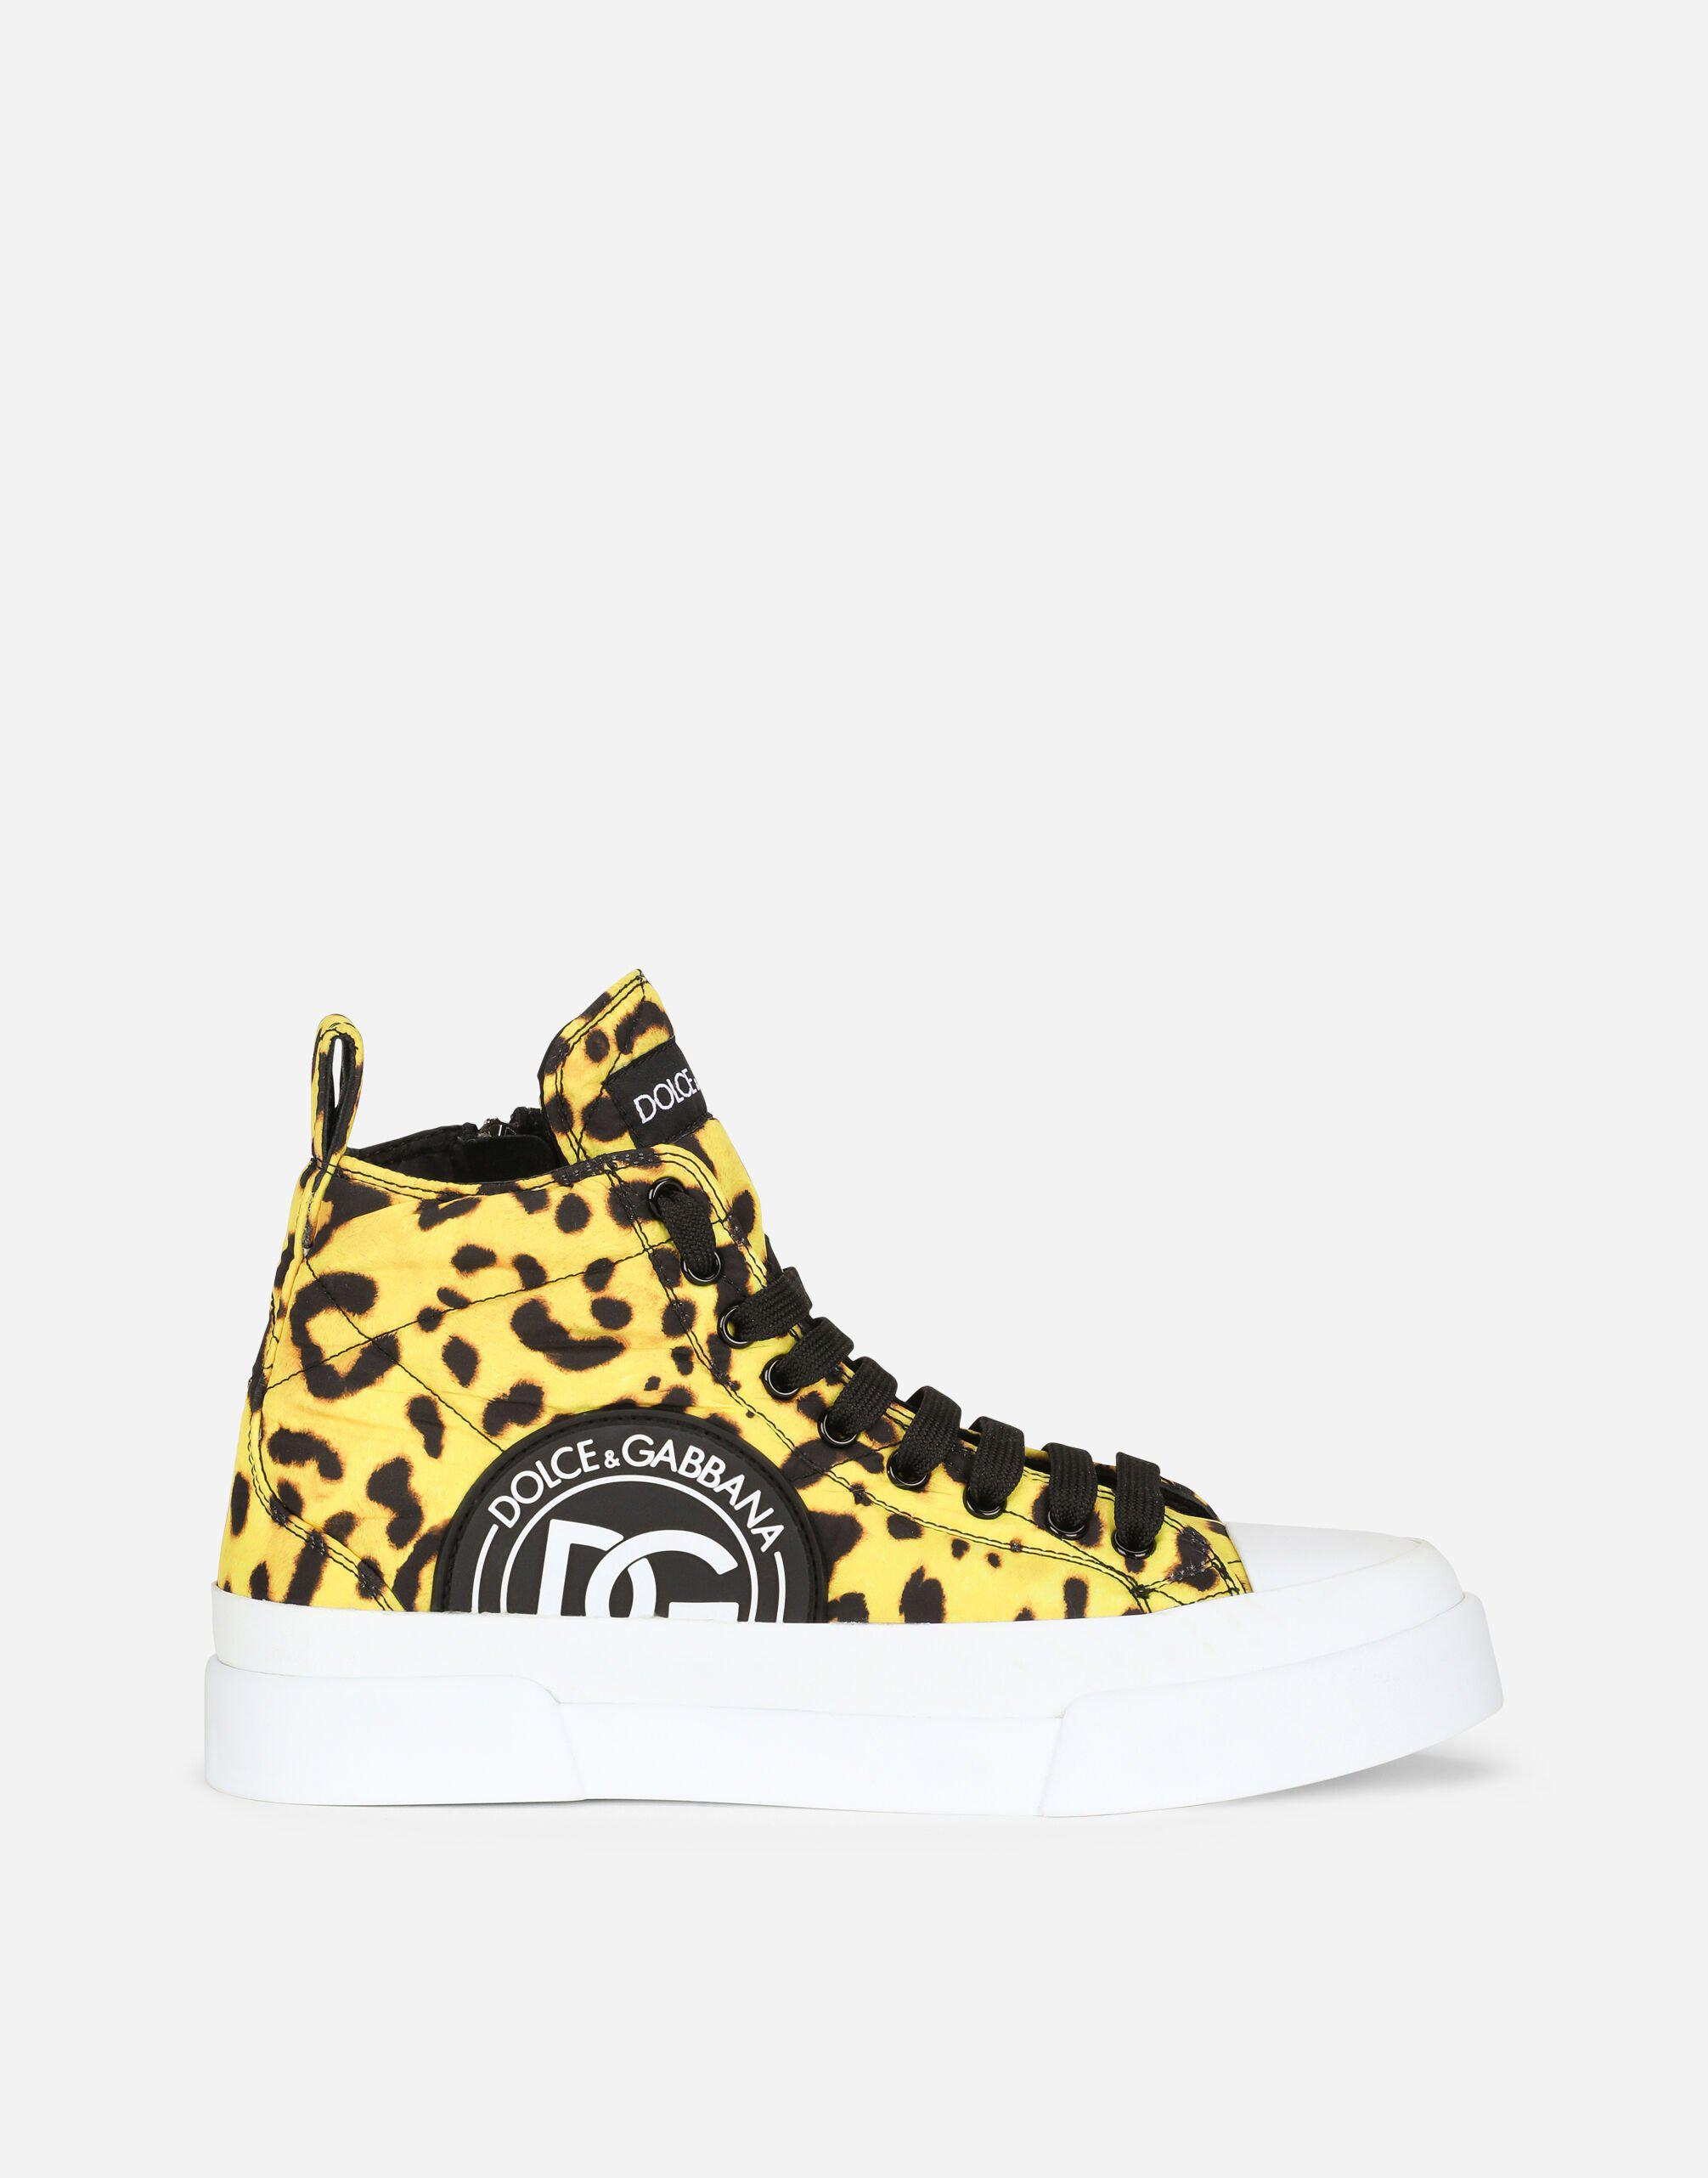 Quilted nylon Portofino Light mid-top sneakers with leopard print over yellow base